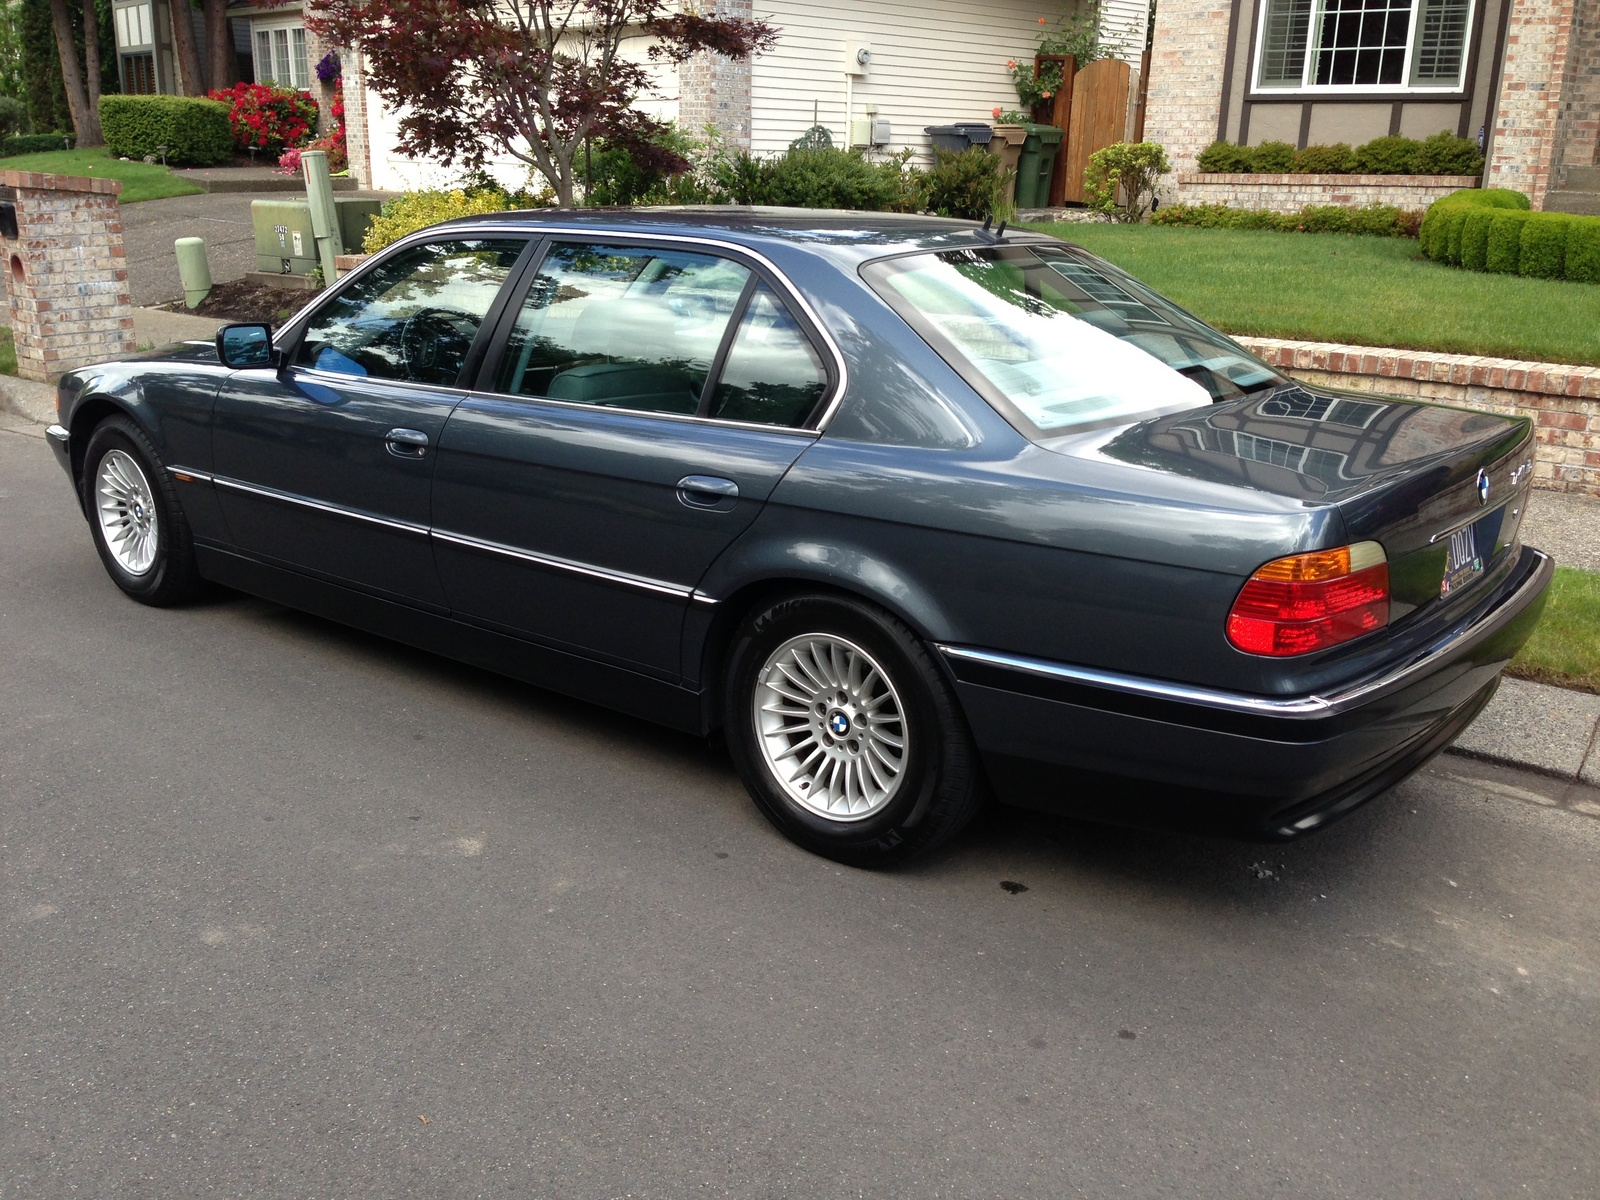 BMW 7 series 725tds 2000 photo - 7